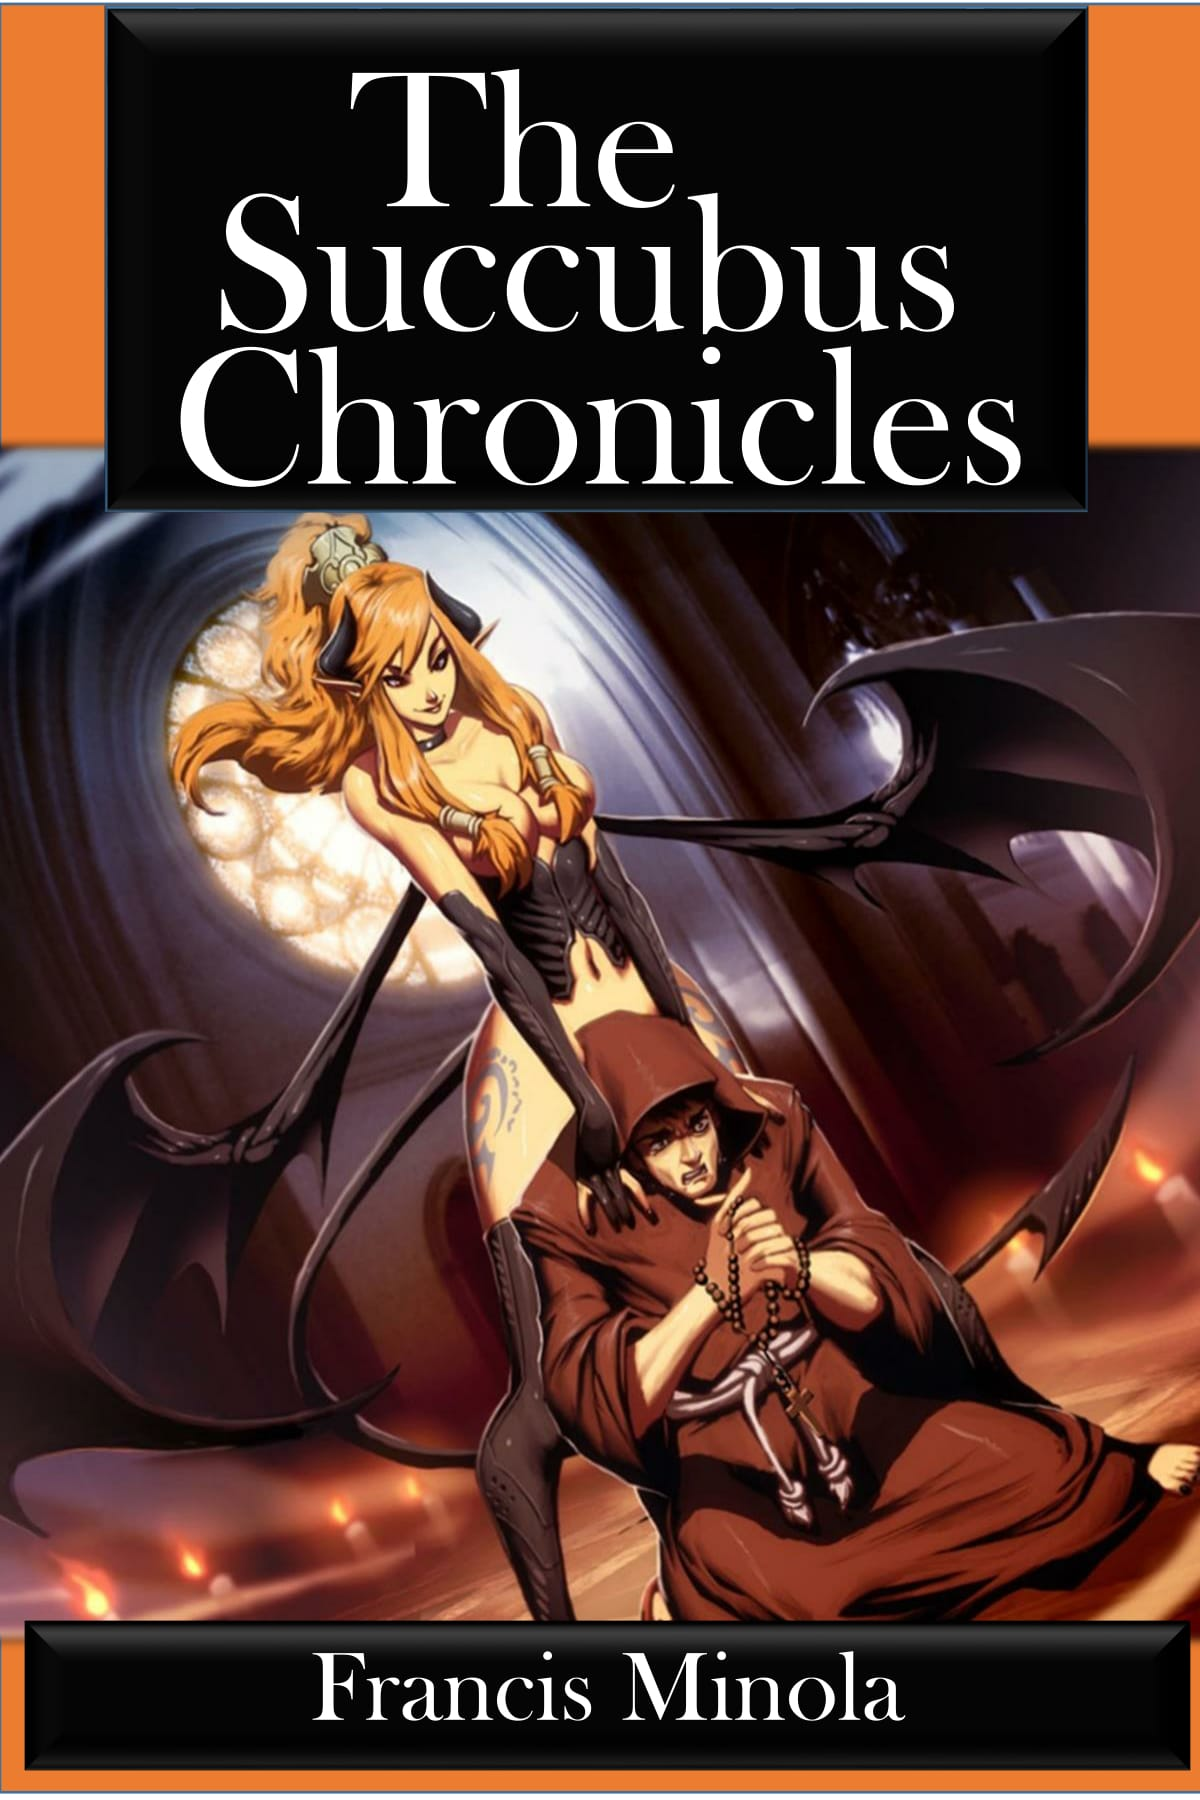 The Succubus Chronicles